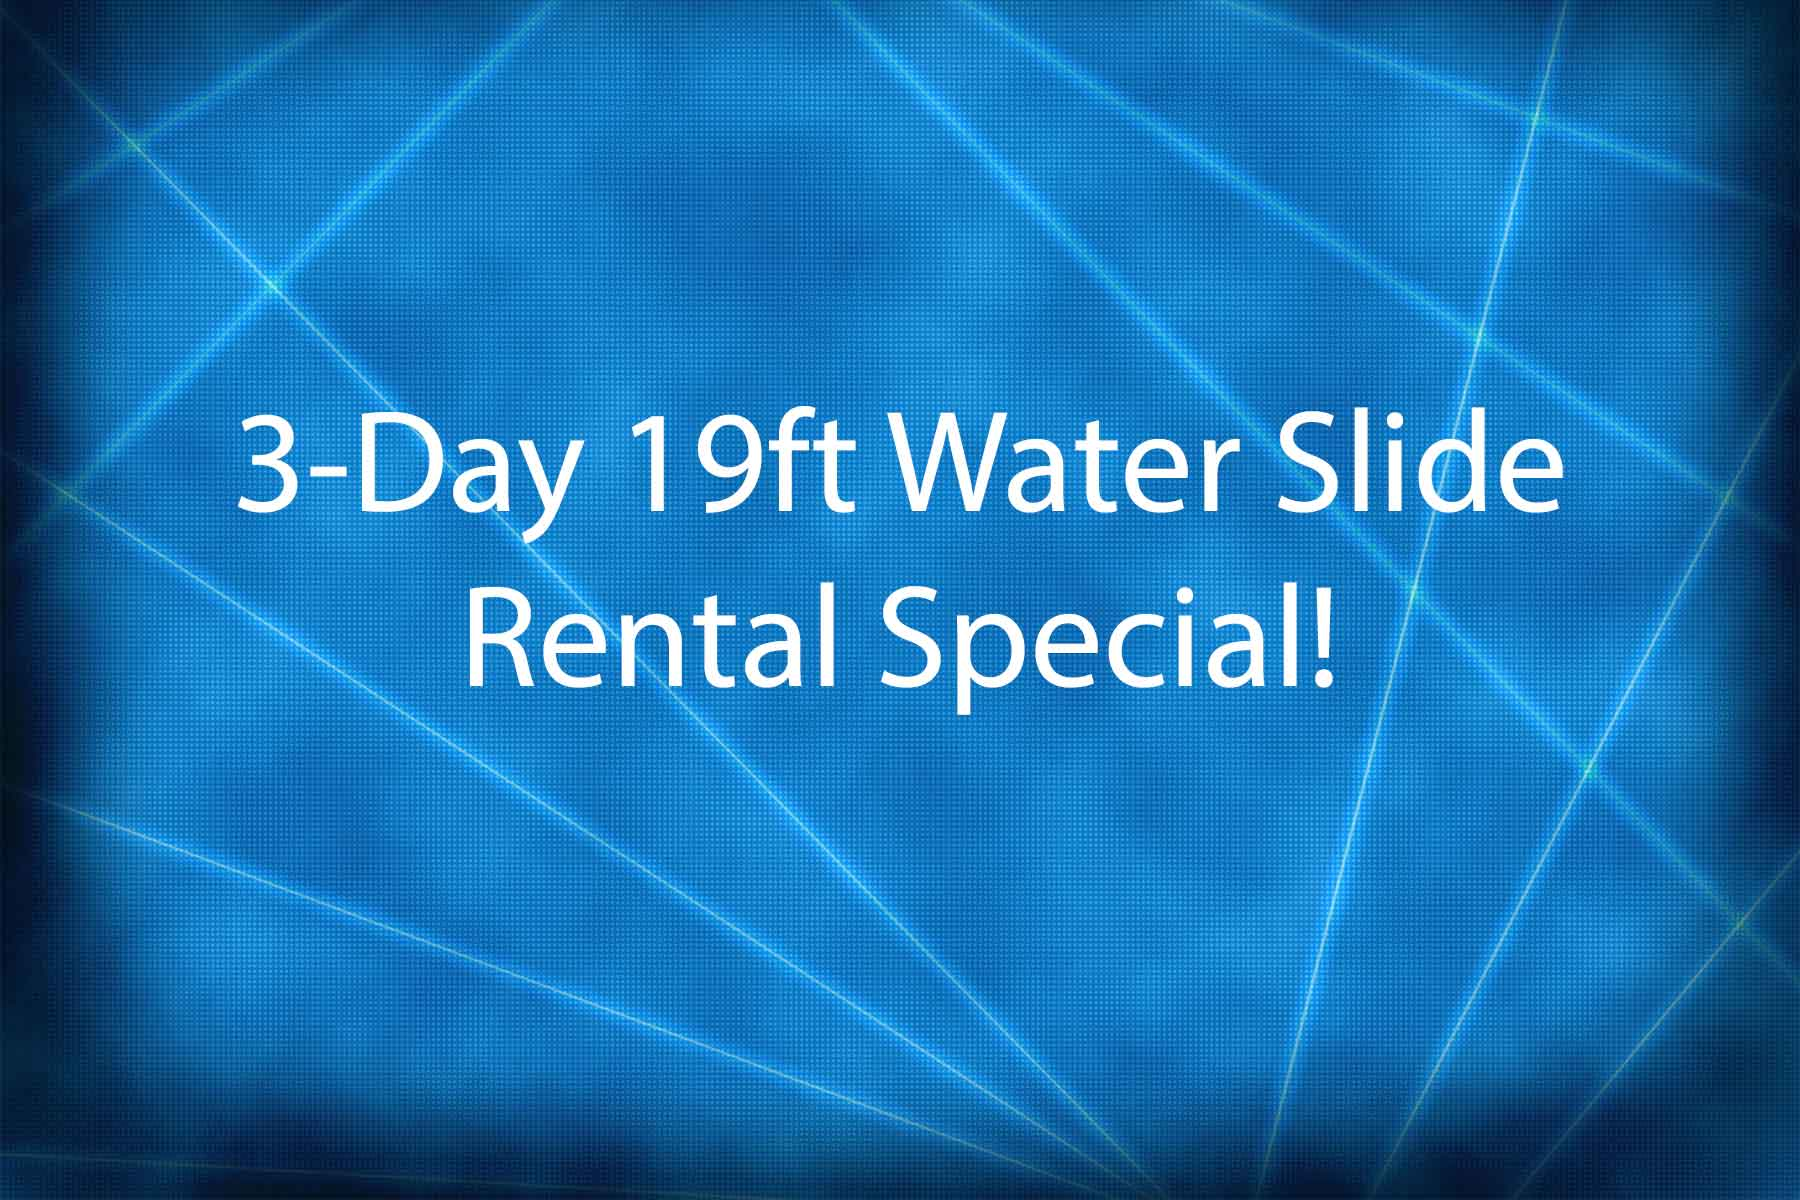 19ft water slide special